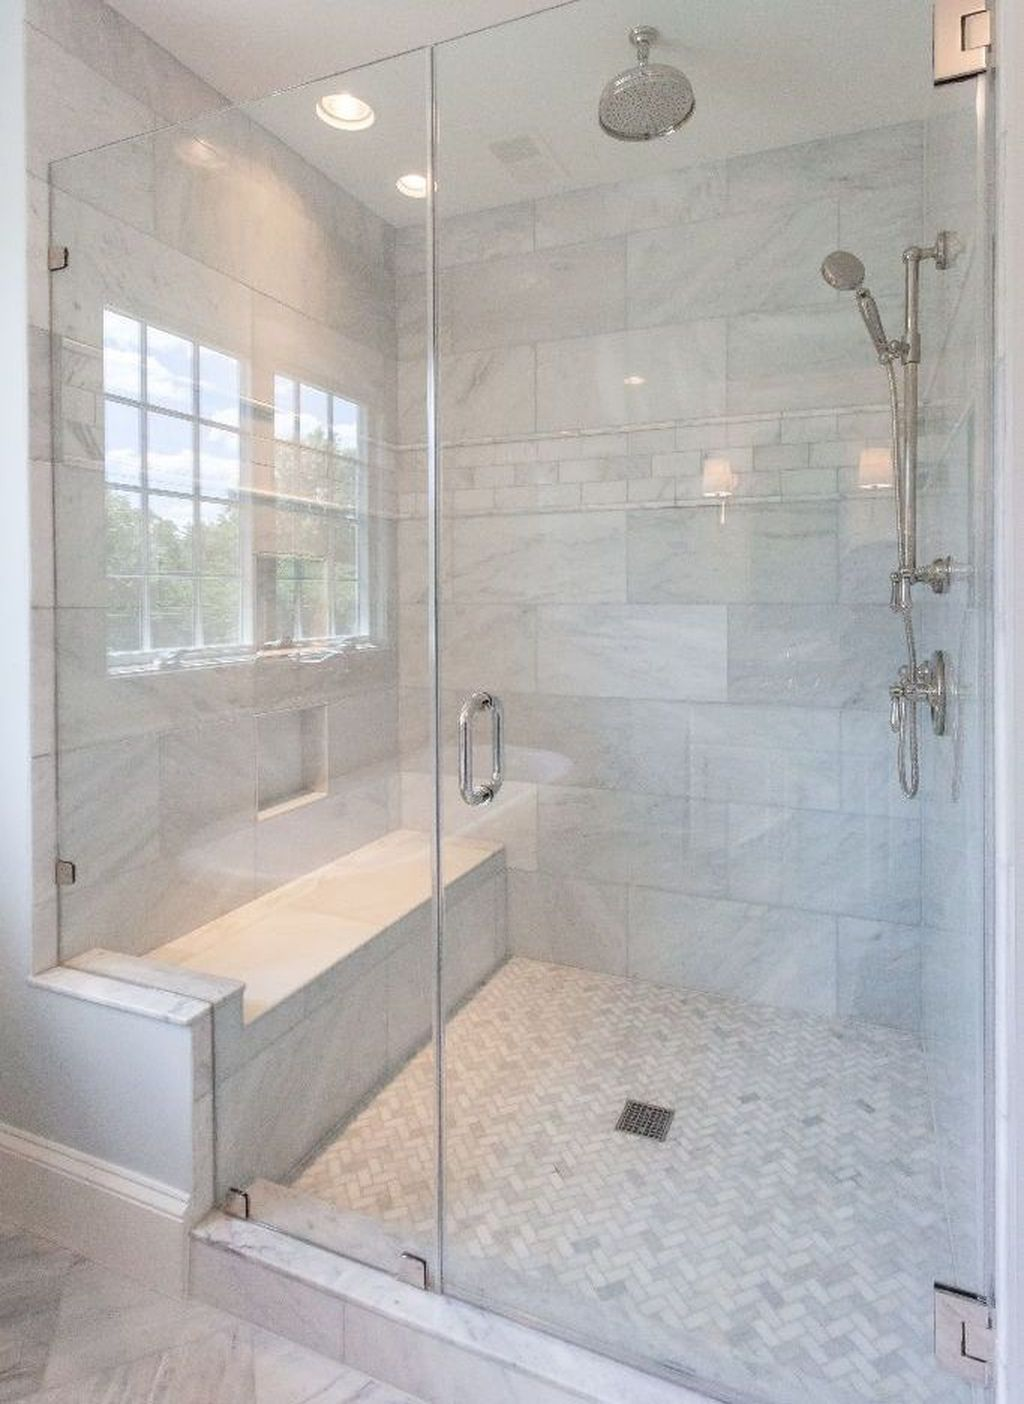 Awesome 46 Beautiful Master Bathroom Remodel Design Ideas Bathroom Remodel Master Bathroom Remodel Designs Bathrooms Remodel